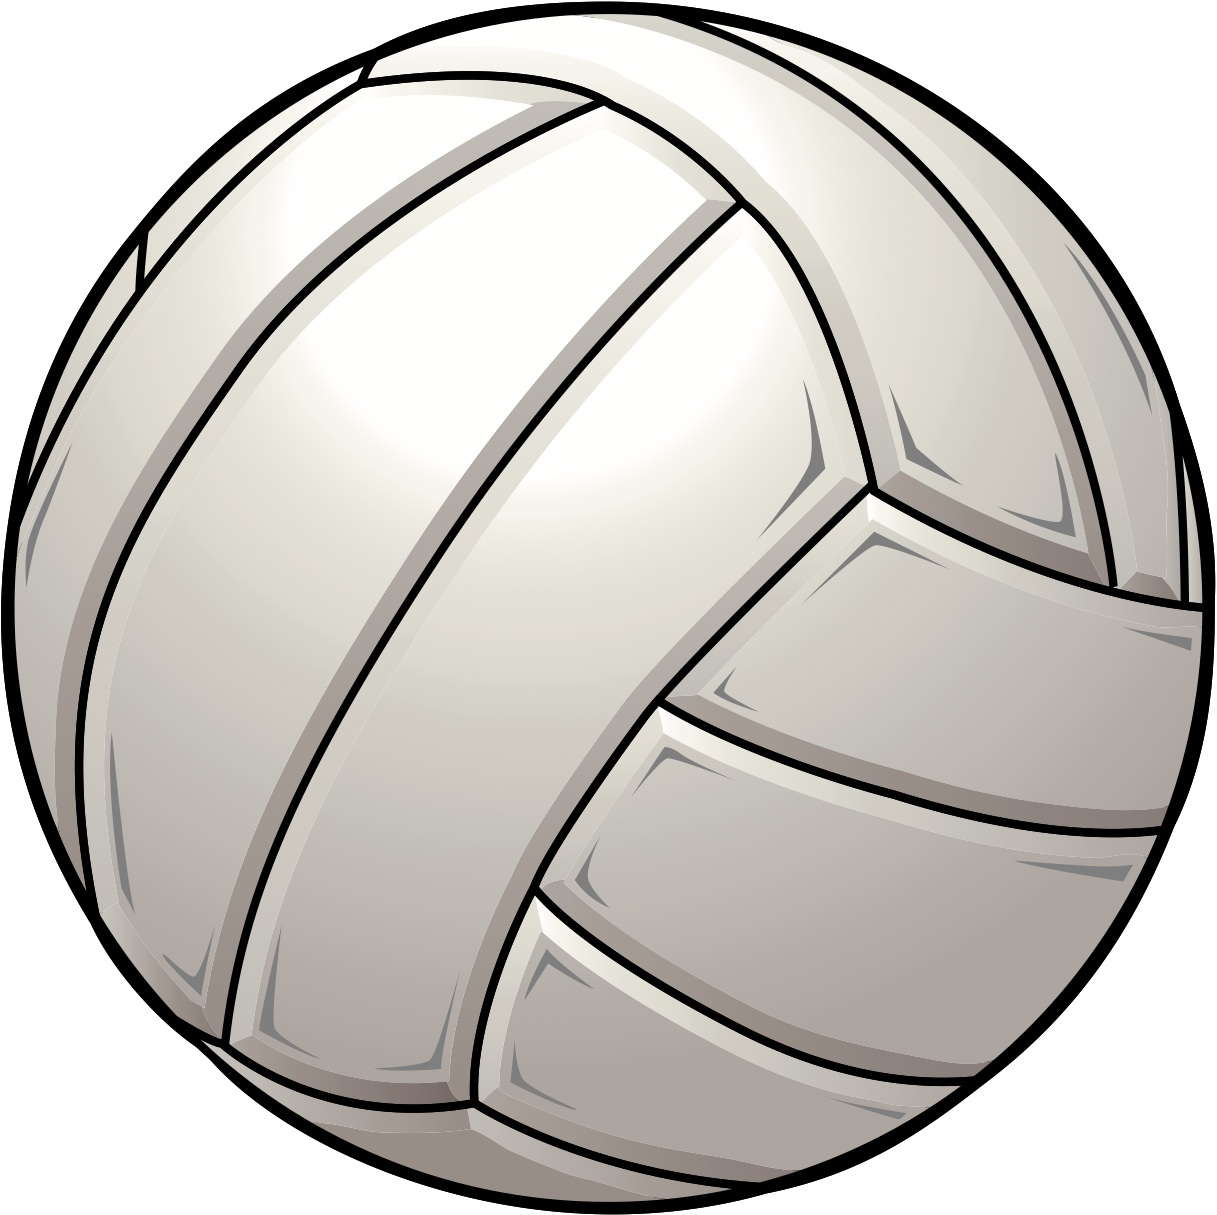 1217x1215 Volleyball Clip Art Sports 4 Image